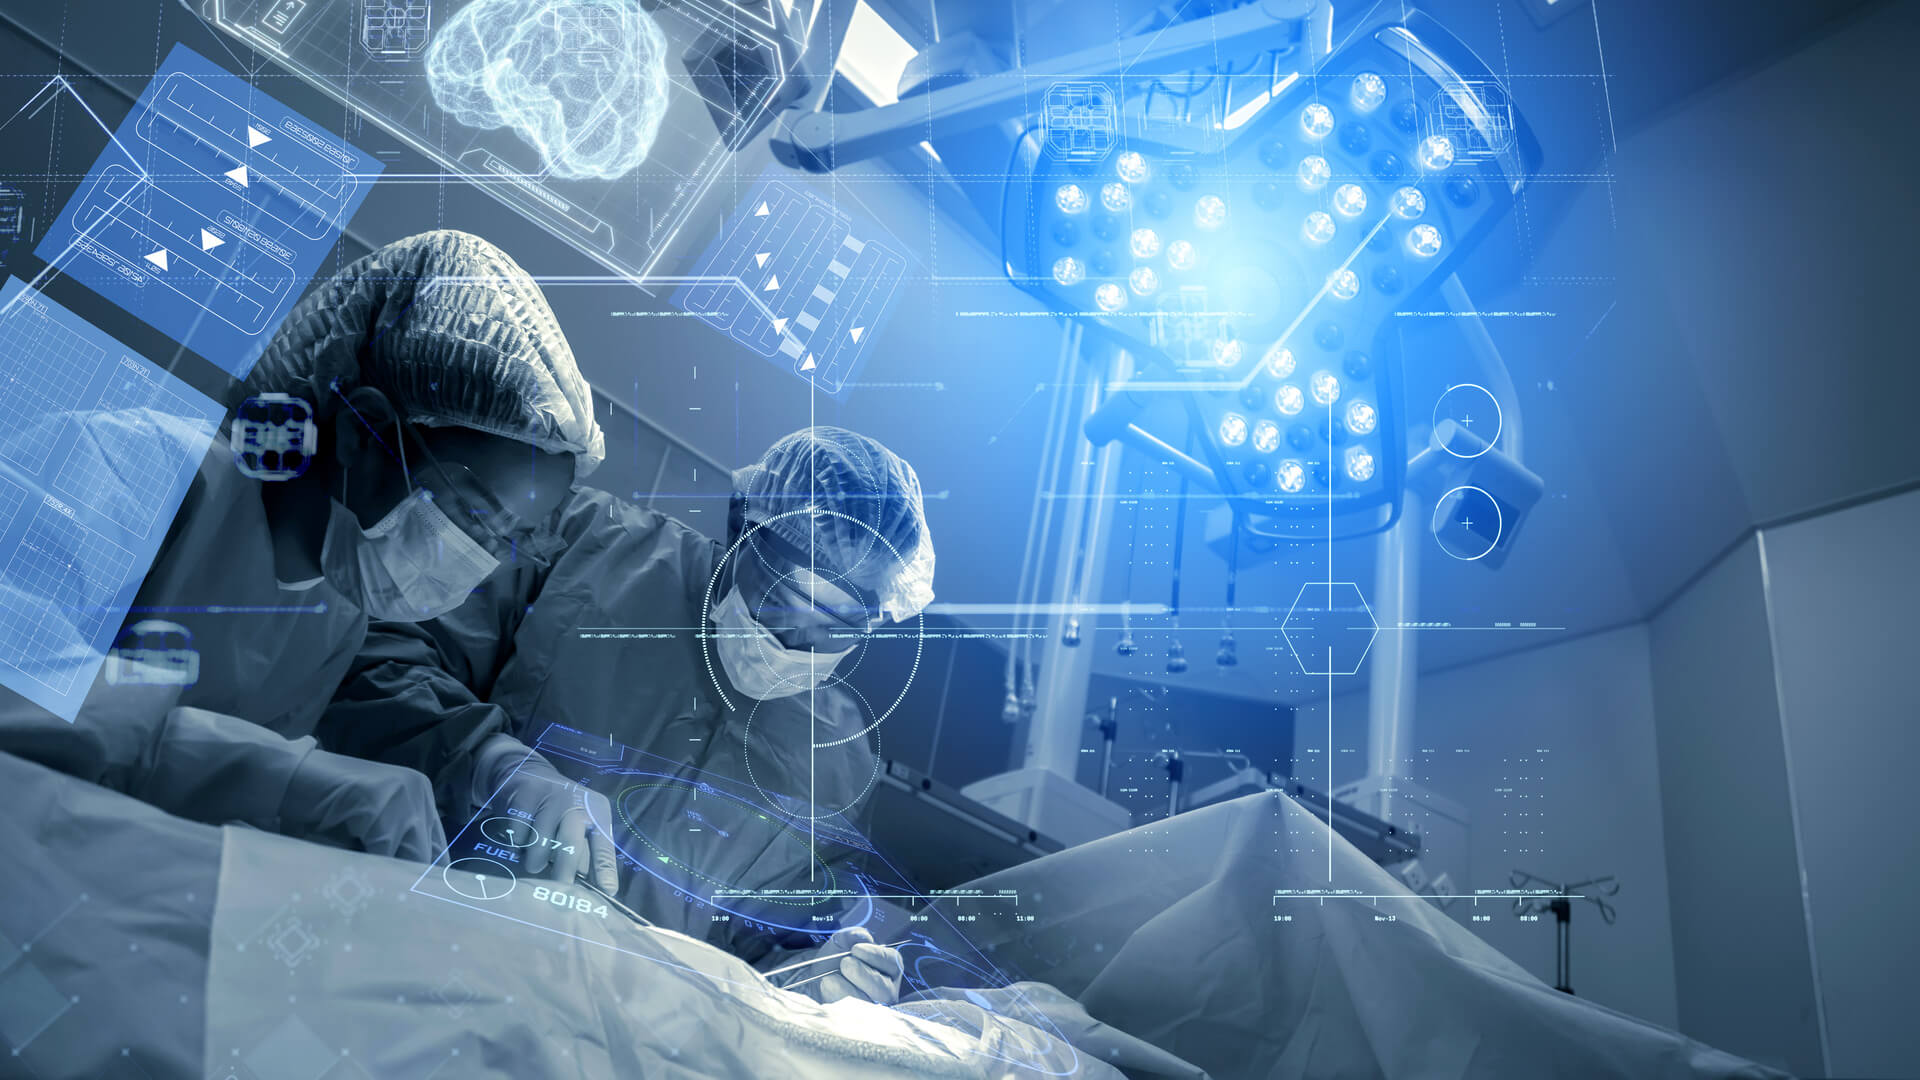 Envisioning An Excellent Future For Surgery